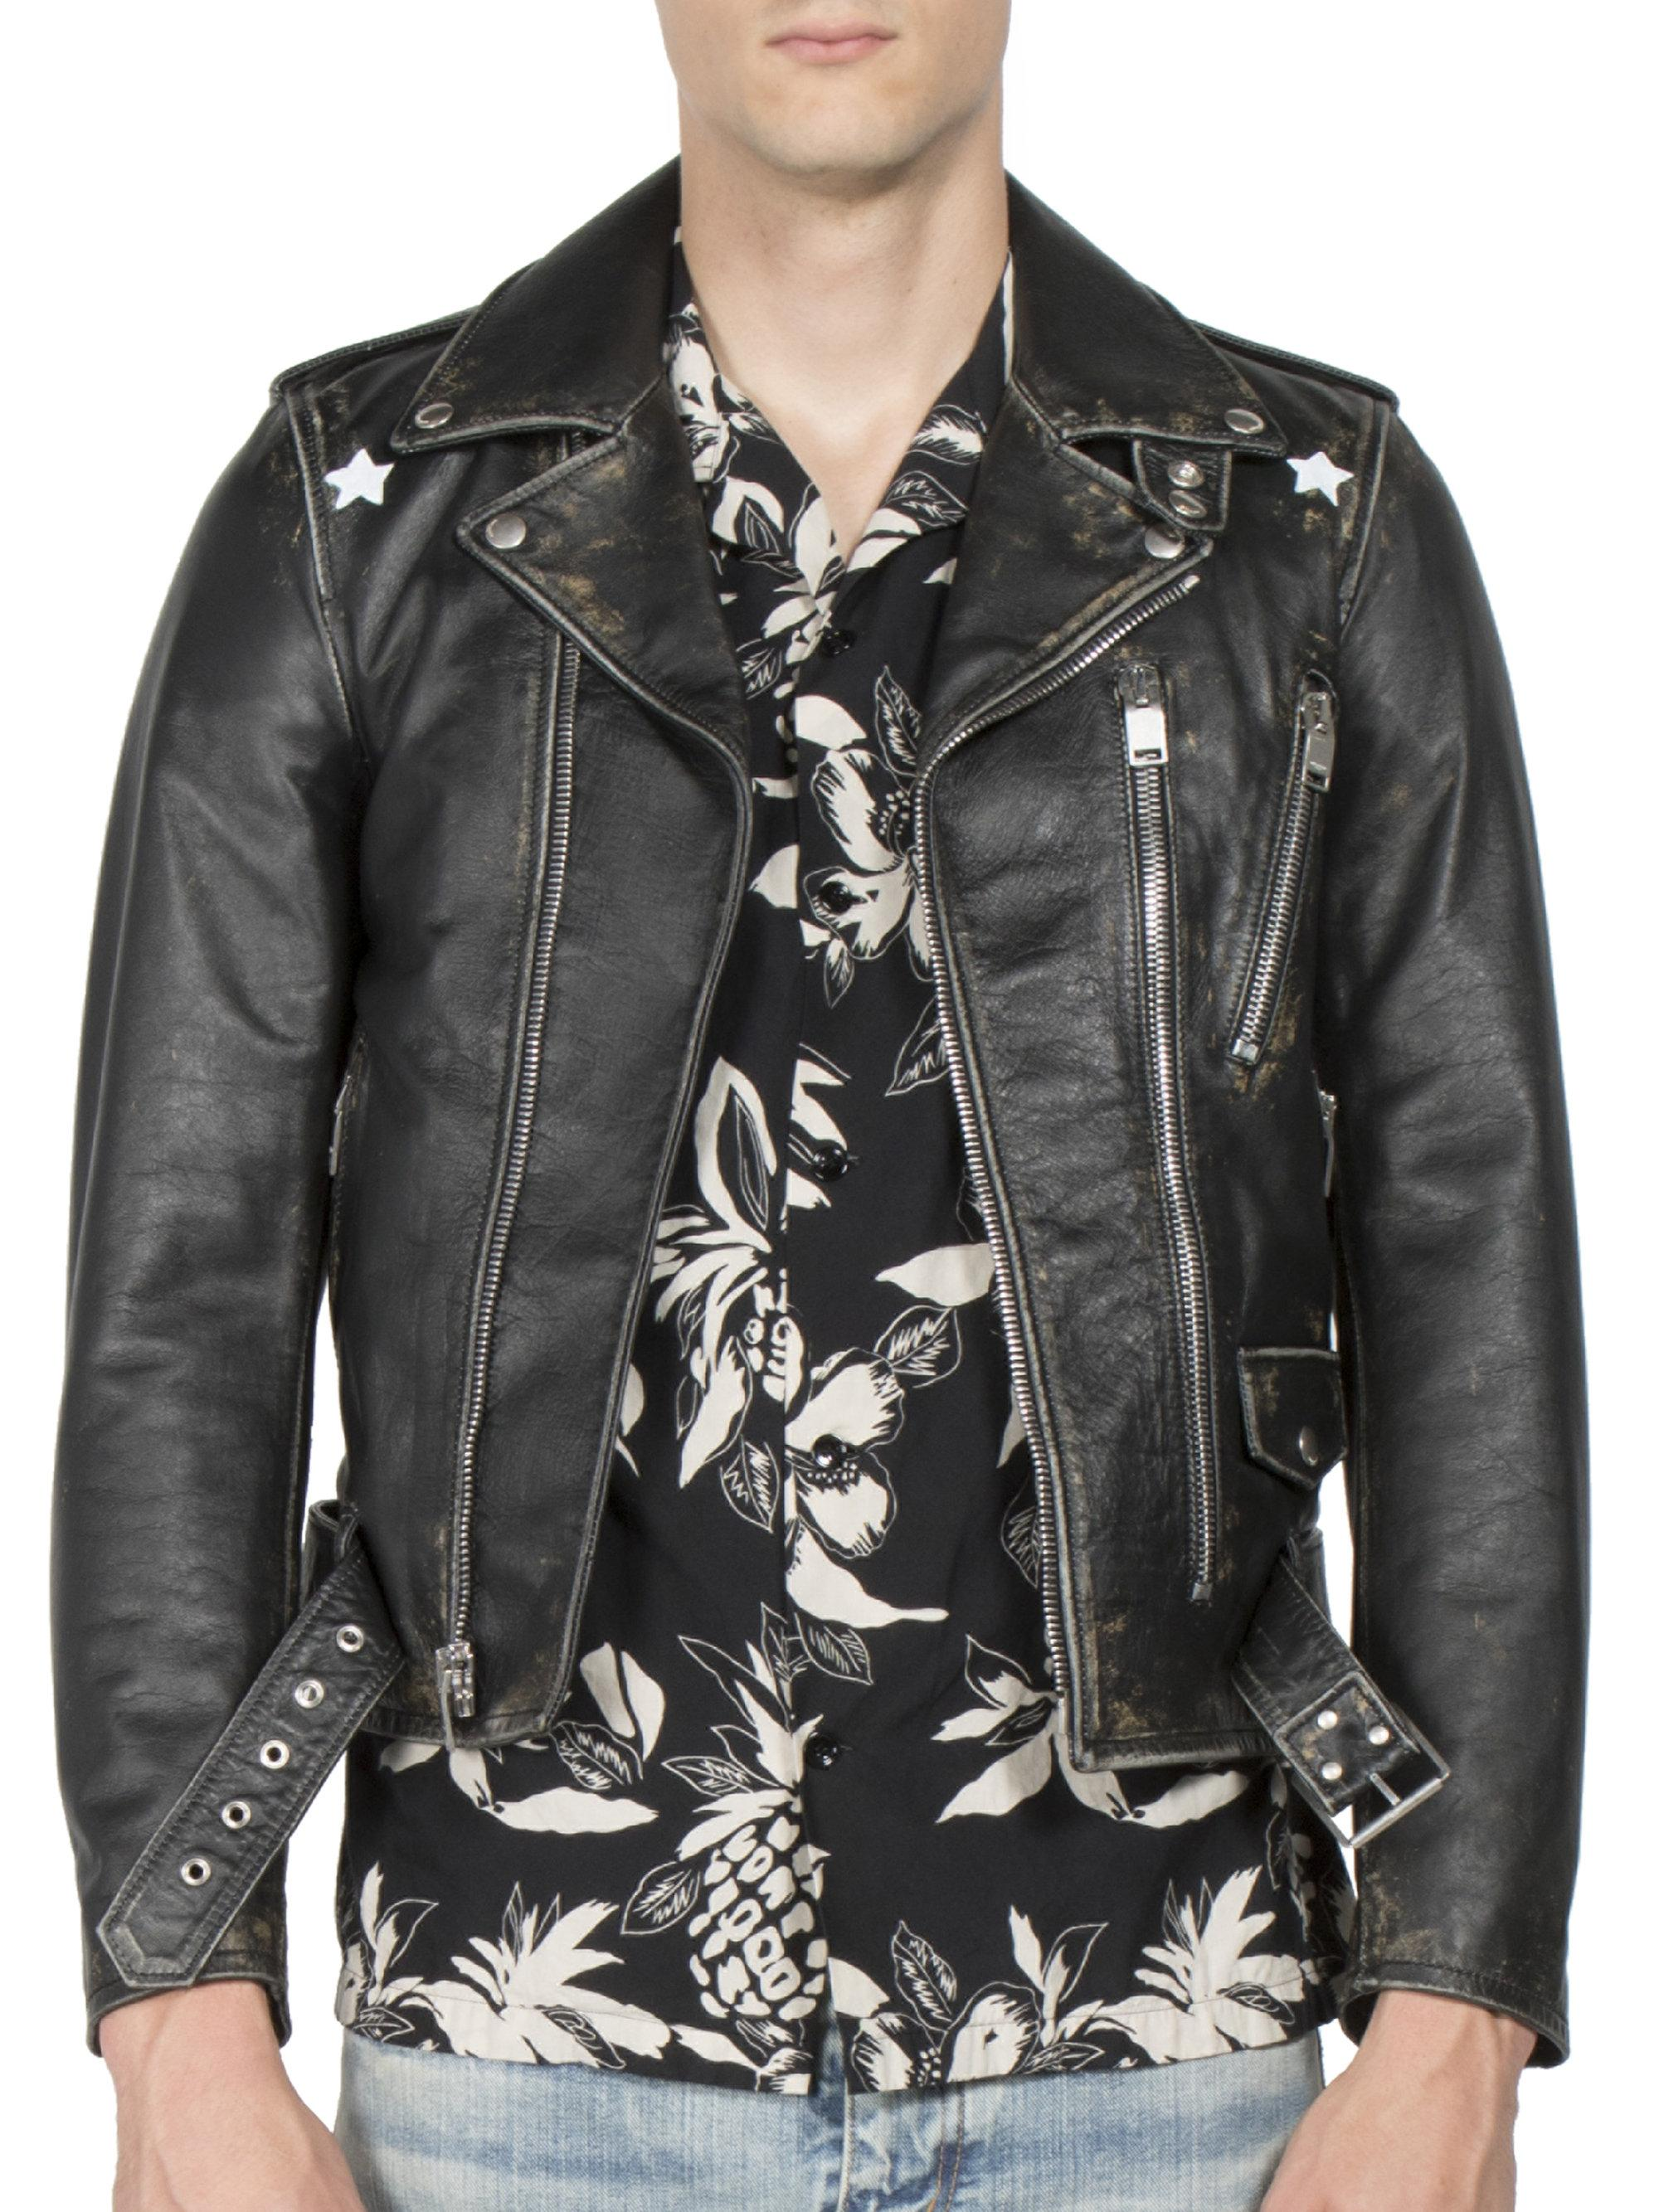 e1ebd562c70 Saint Laurent Distressed Skin Leather Jacket in Black for Men - Lyst